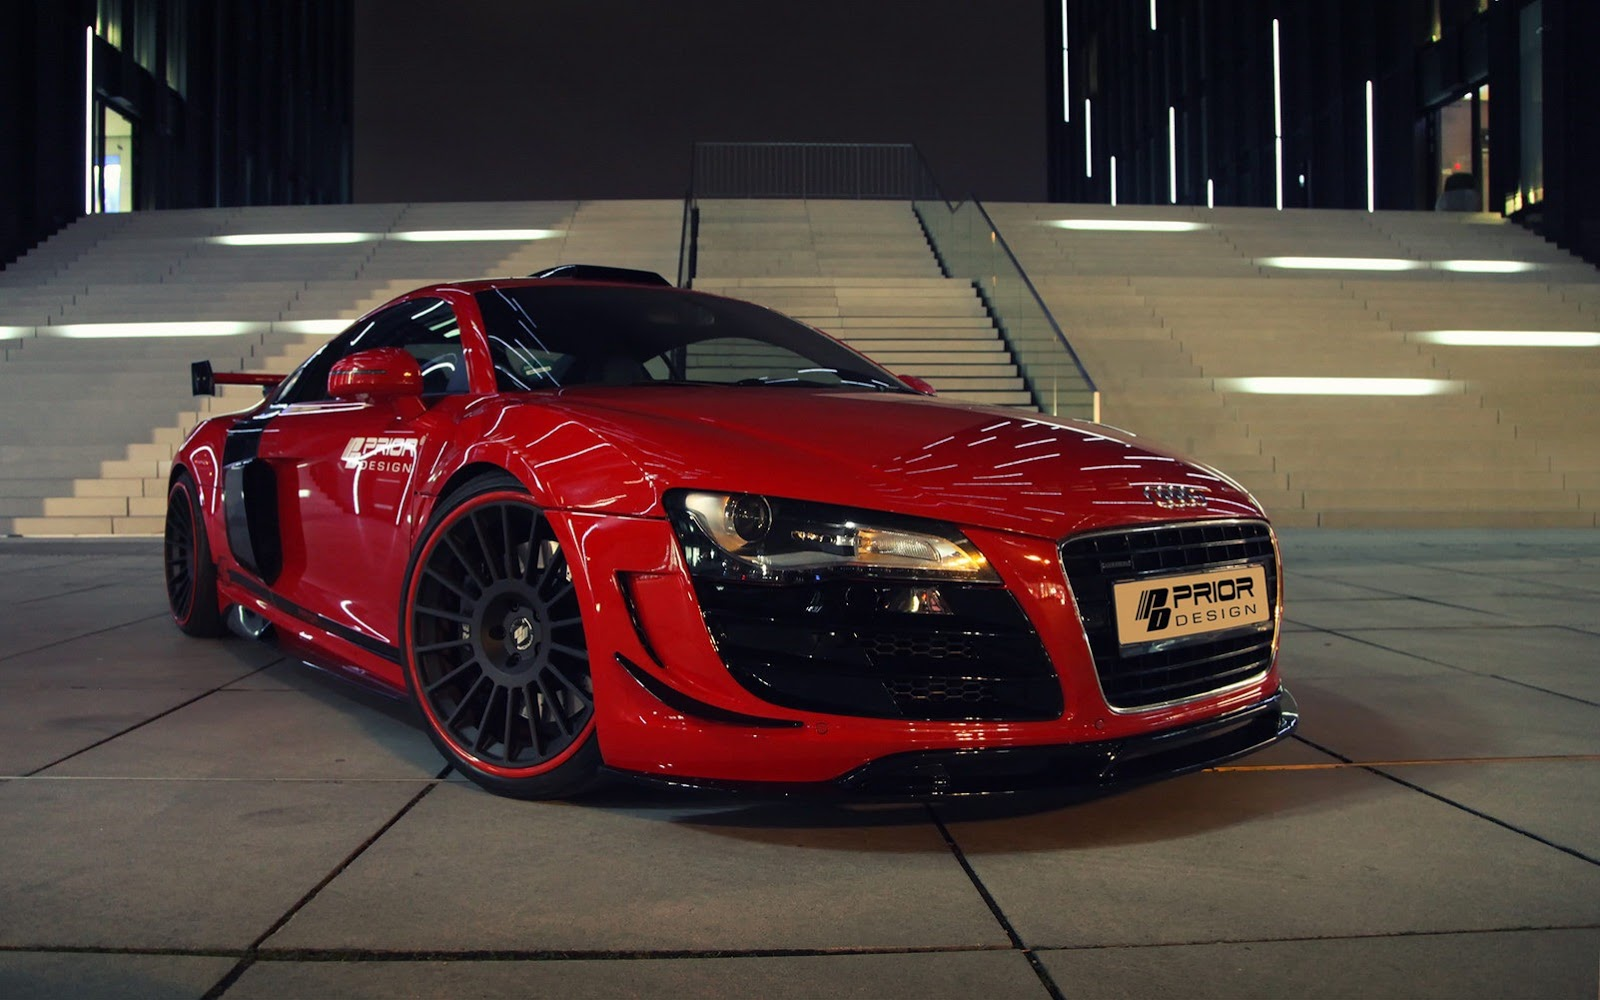 Red Audi Car R8 Latest Pics Mobile Wallpaper